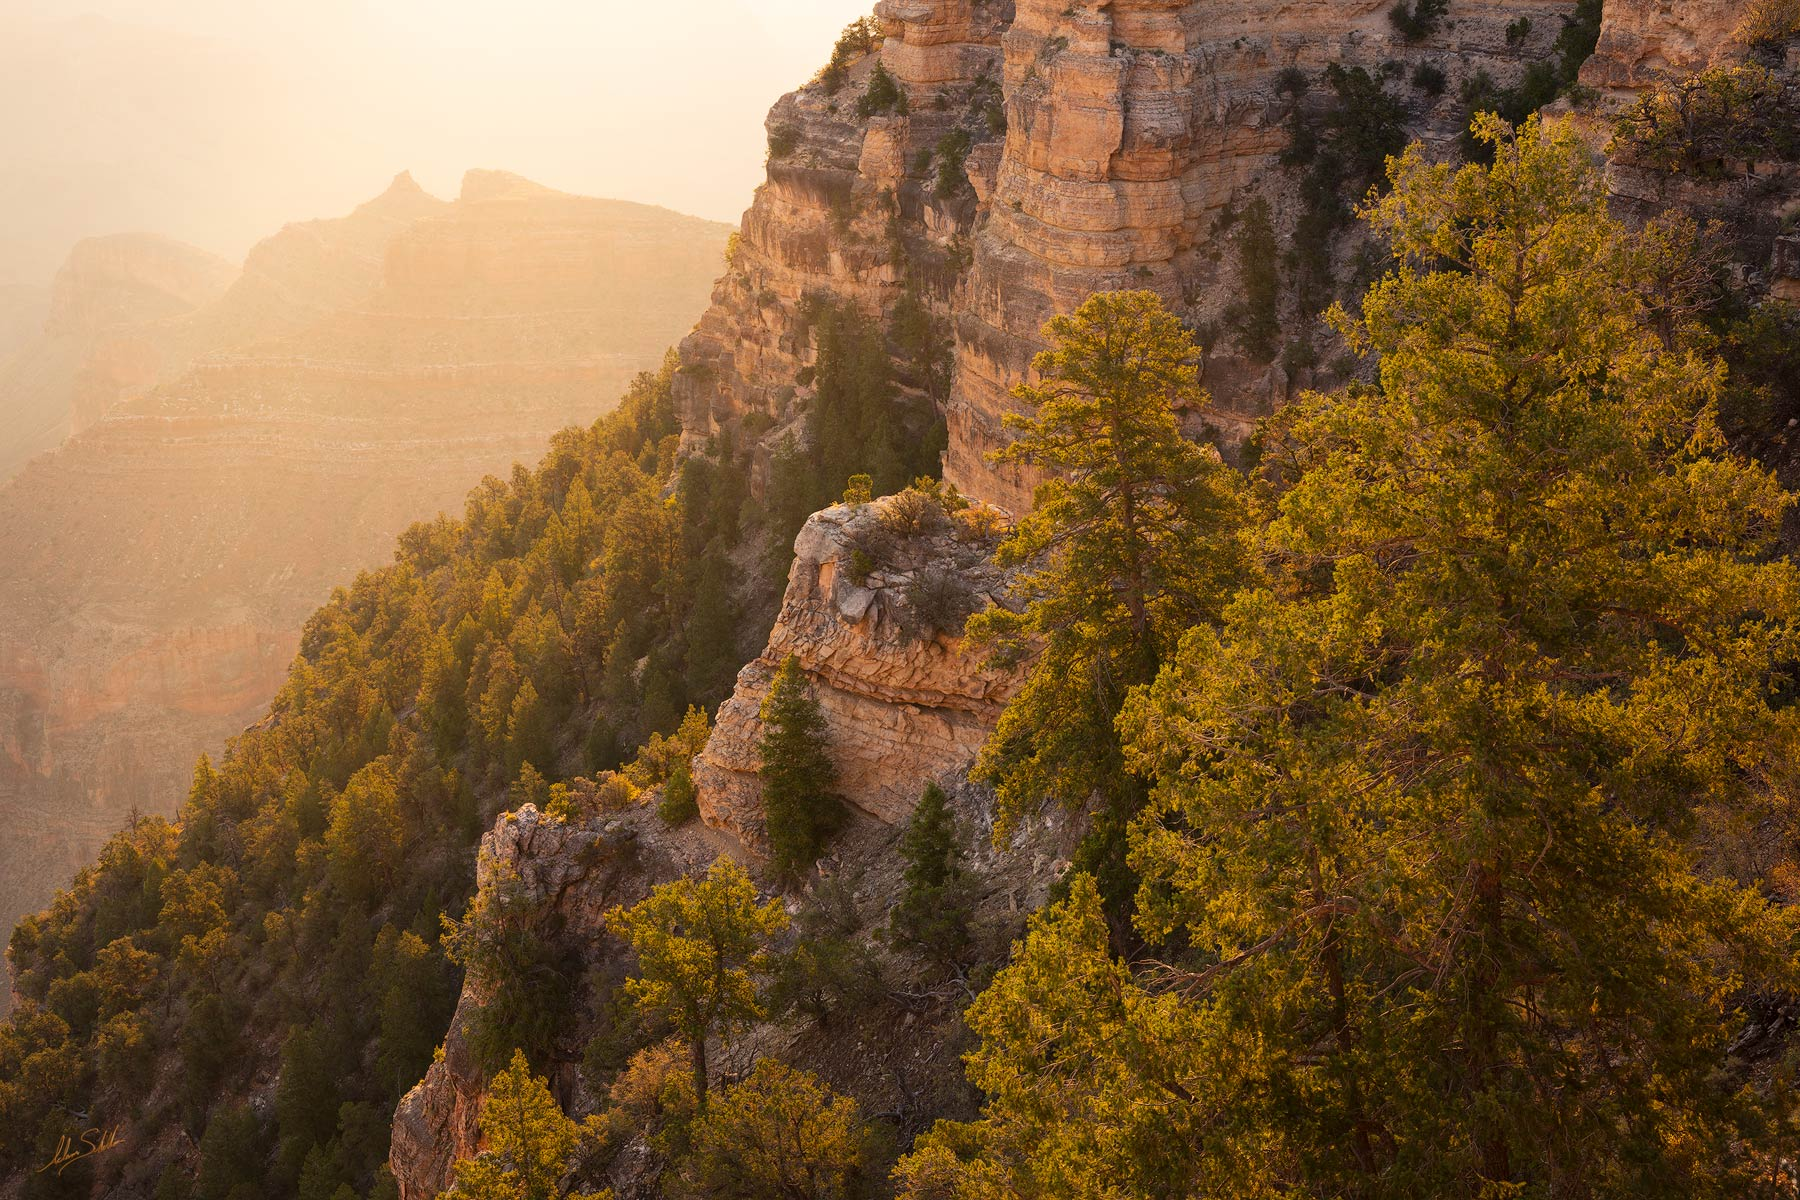 America, Southwest, Arizona, Colorado Plateau, Grand Canyon, National Park, Ponderosa Pine, South Rim, Southwest, Yaki Point, photo